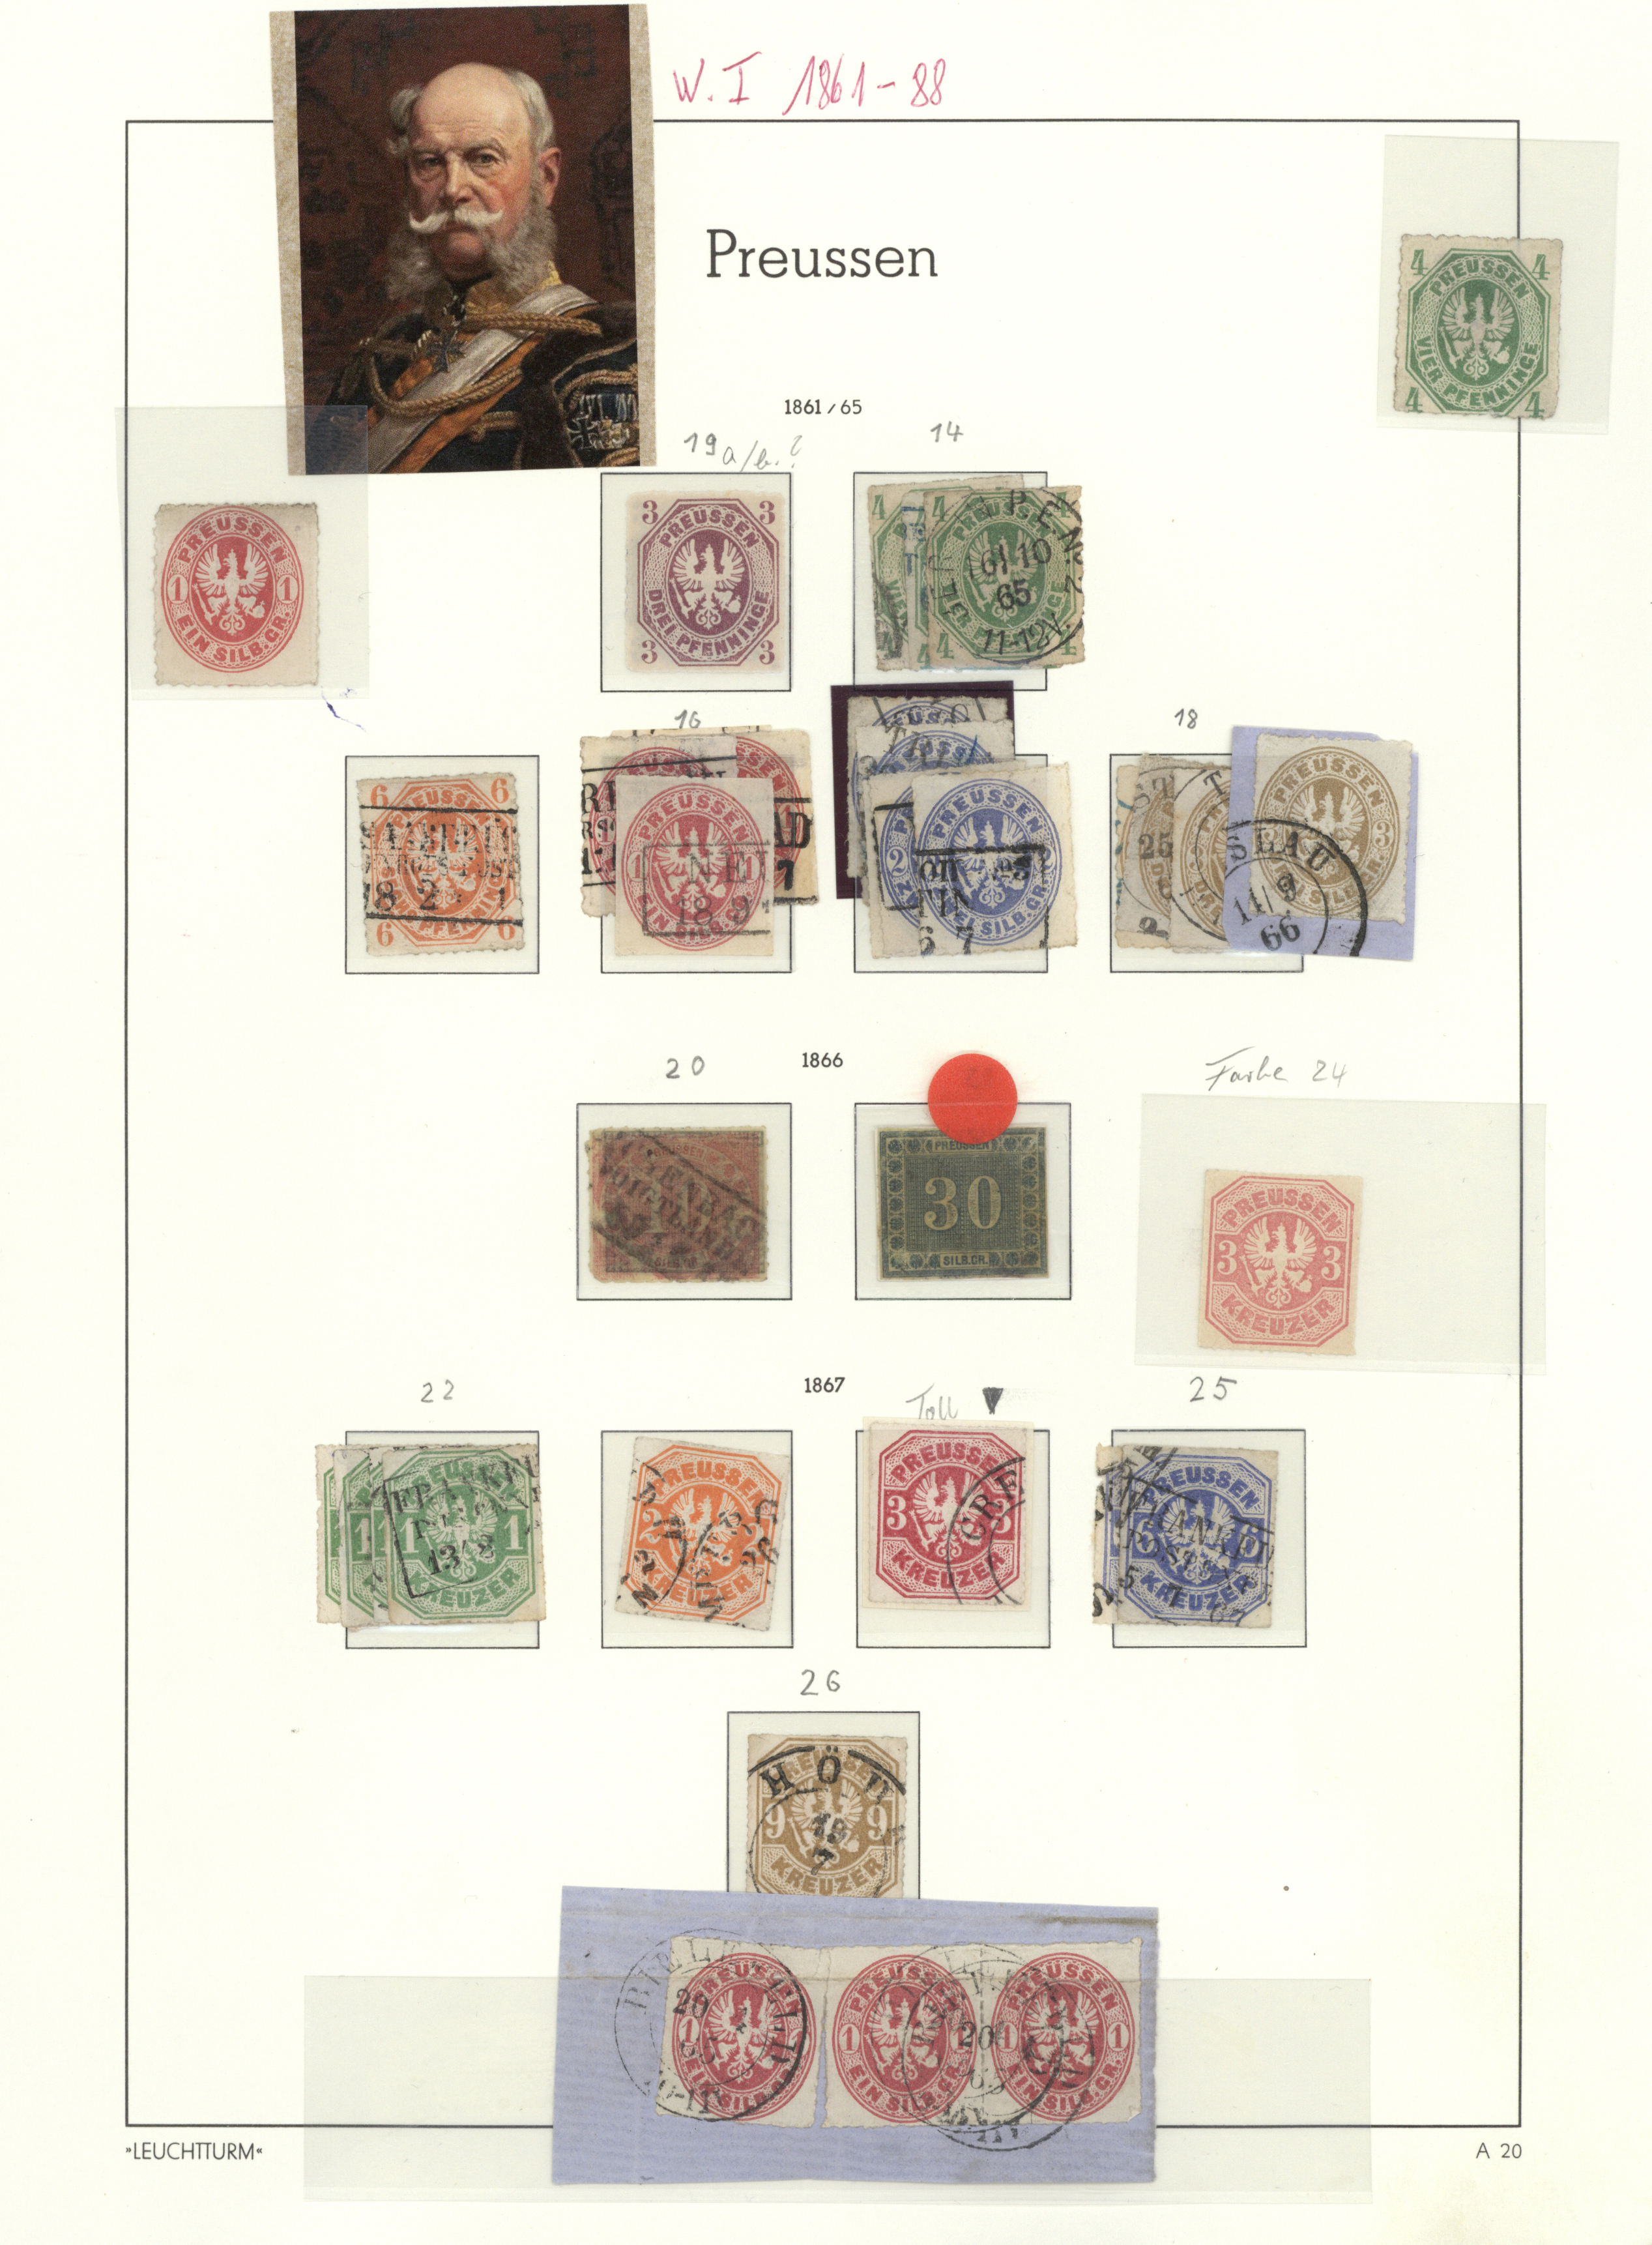 Lot 36437 - Preußen - Marken und Briefe  -  Auktionshaus Christoph Gärtner GmbH & Co. KG Collections Germany,  Collections Supplement, Surprise boxes #39 Day 7